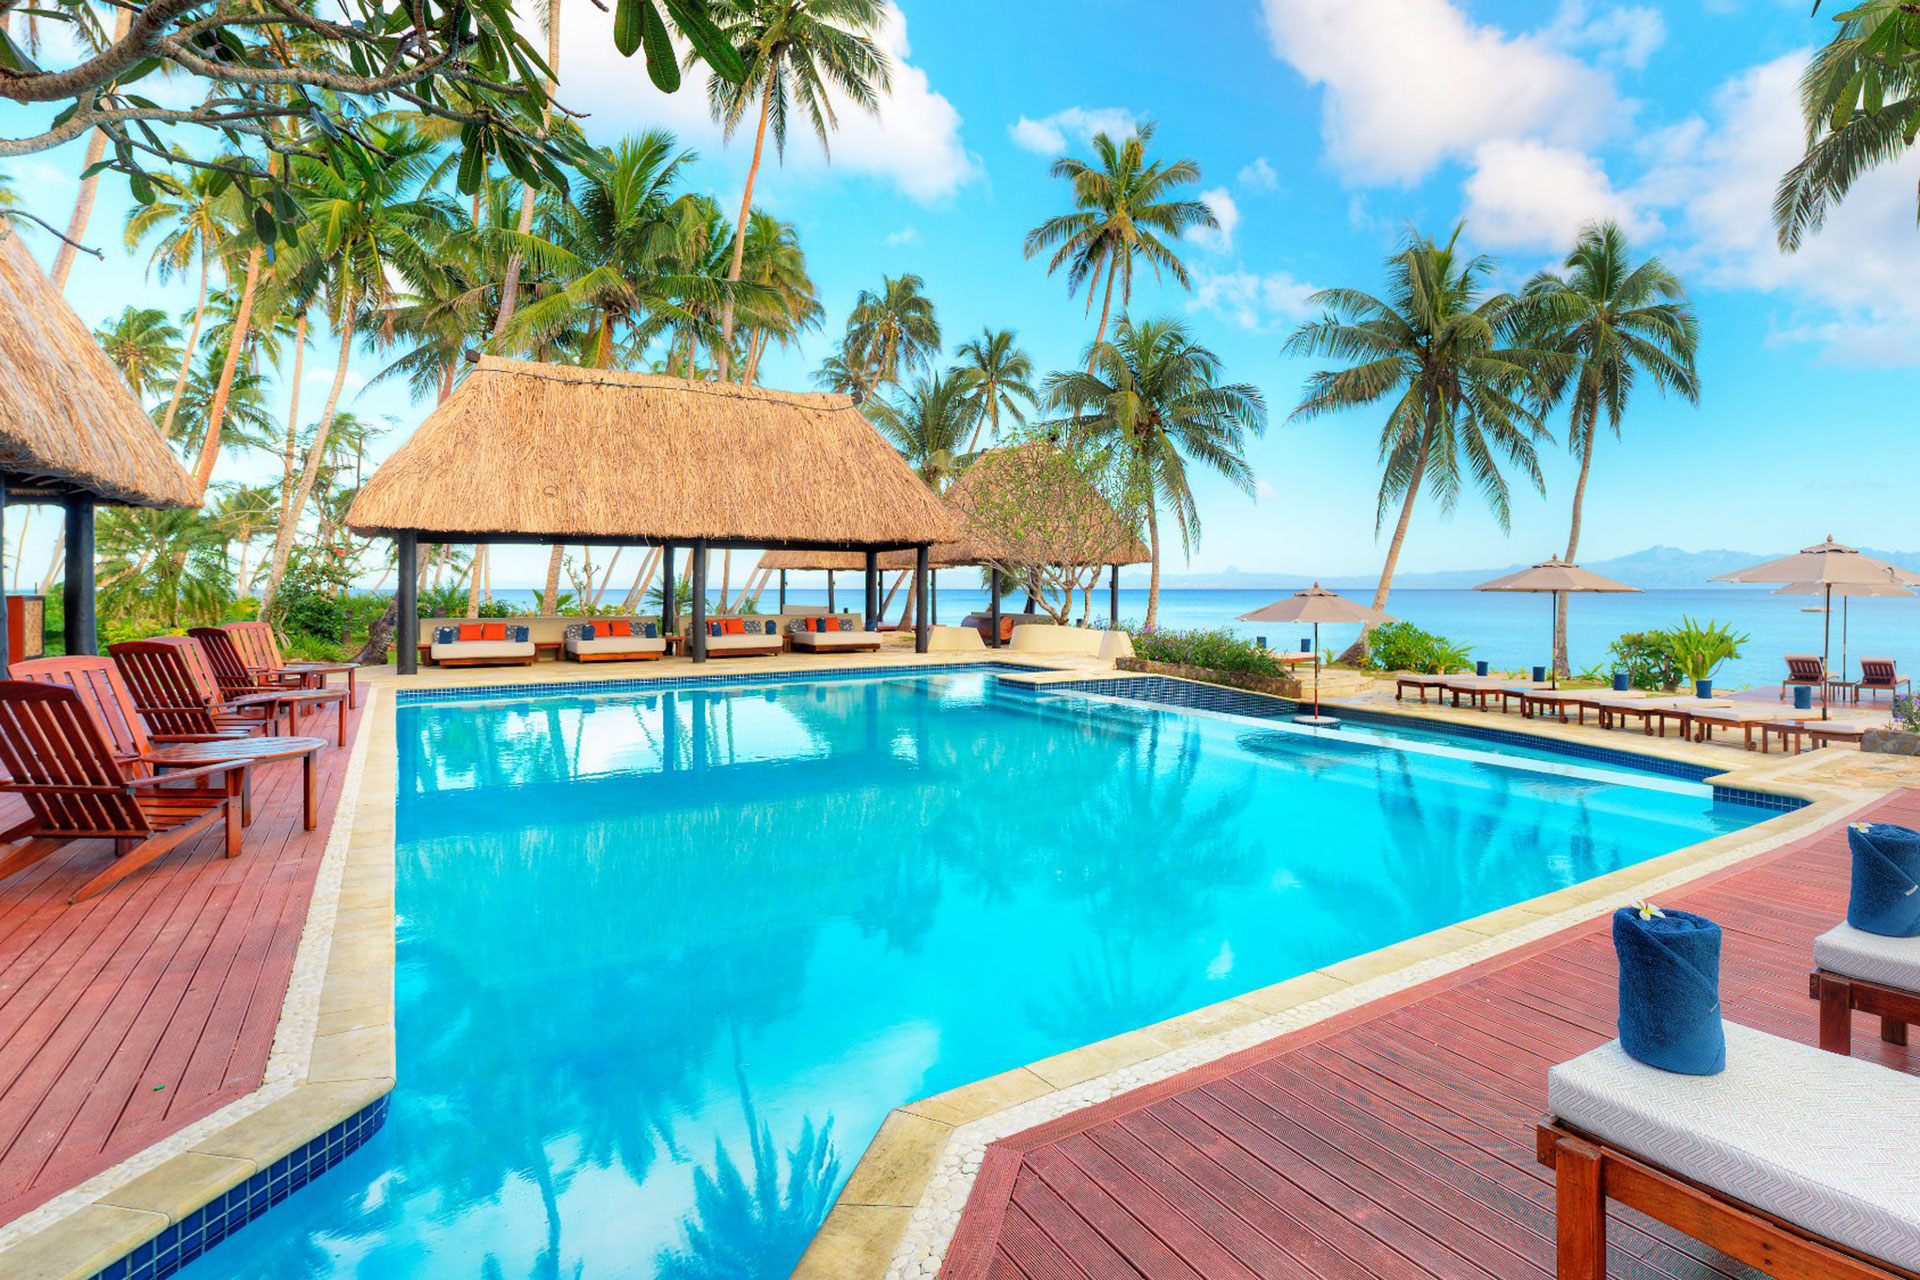 Pool at Jean-Michel Cousteau Resort; Courtesy of Jean-Michel Cousteau Resort